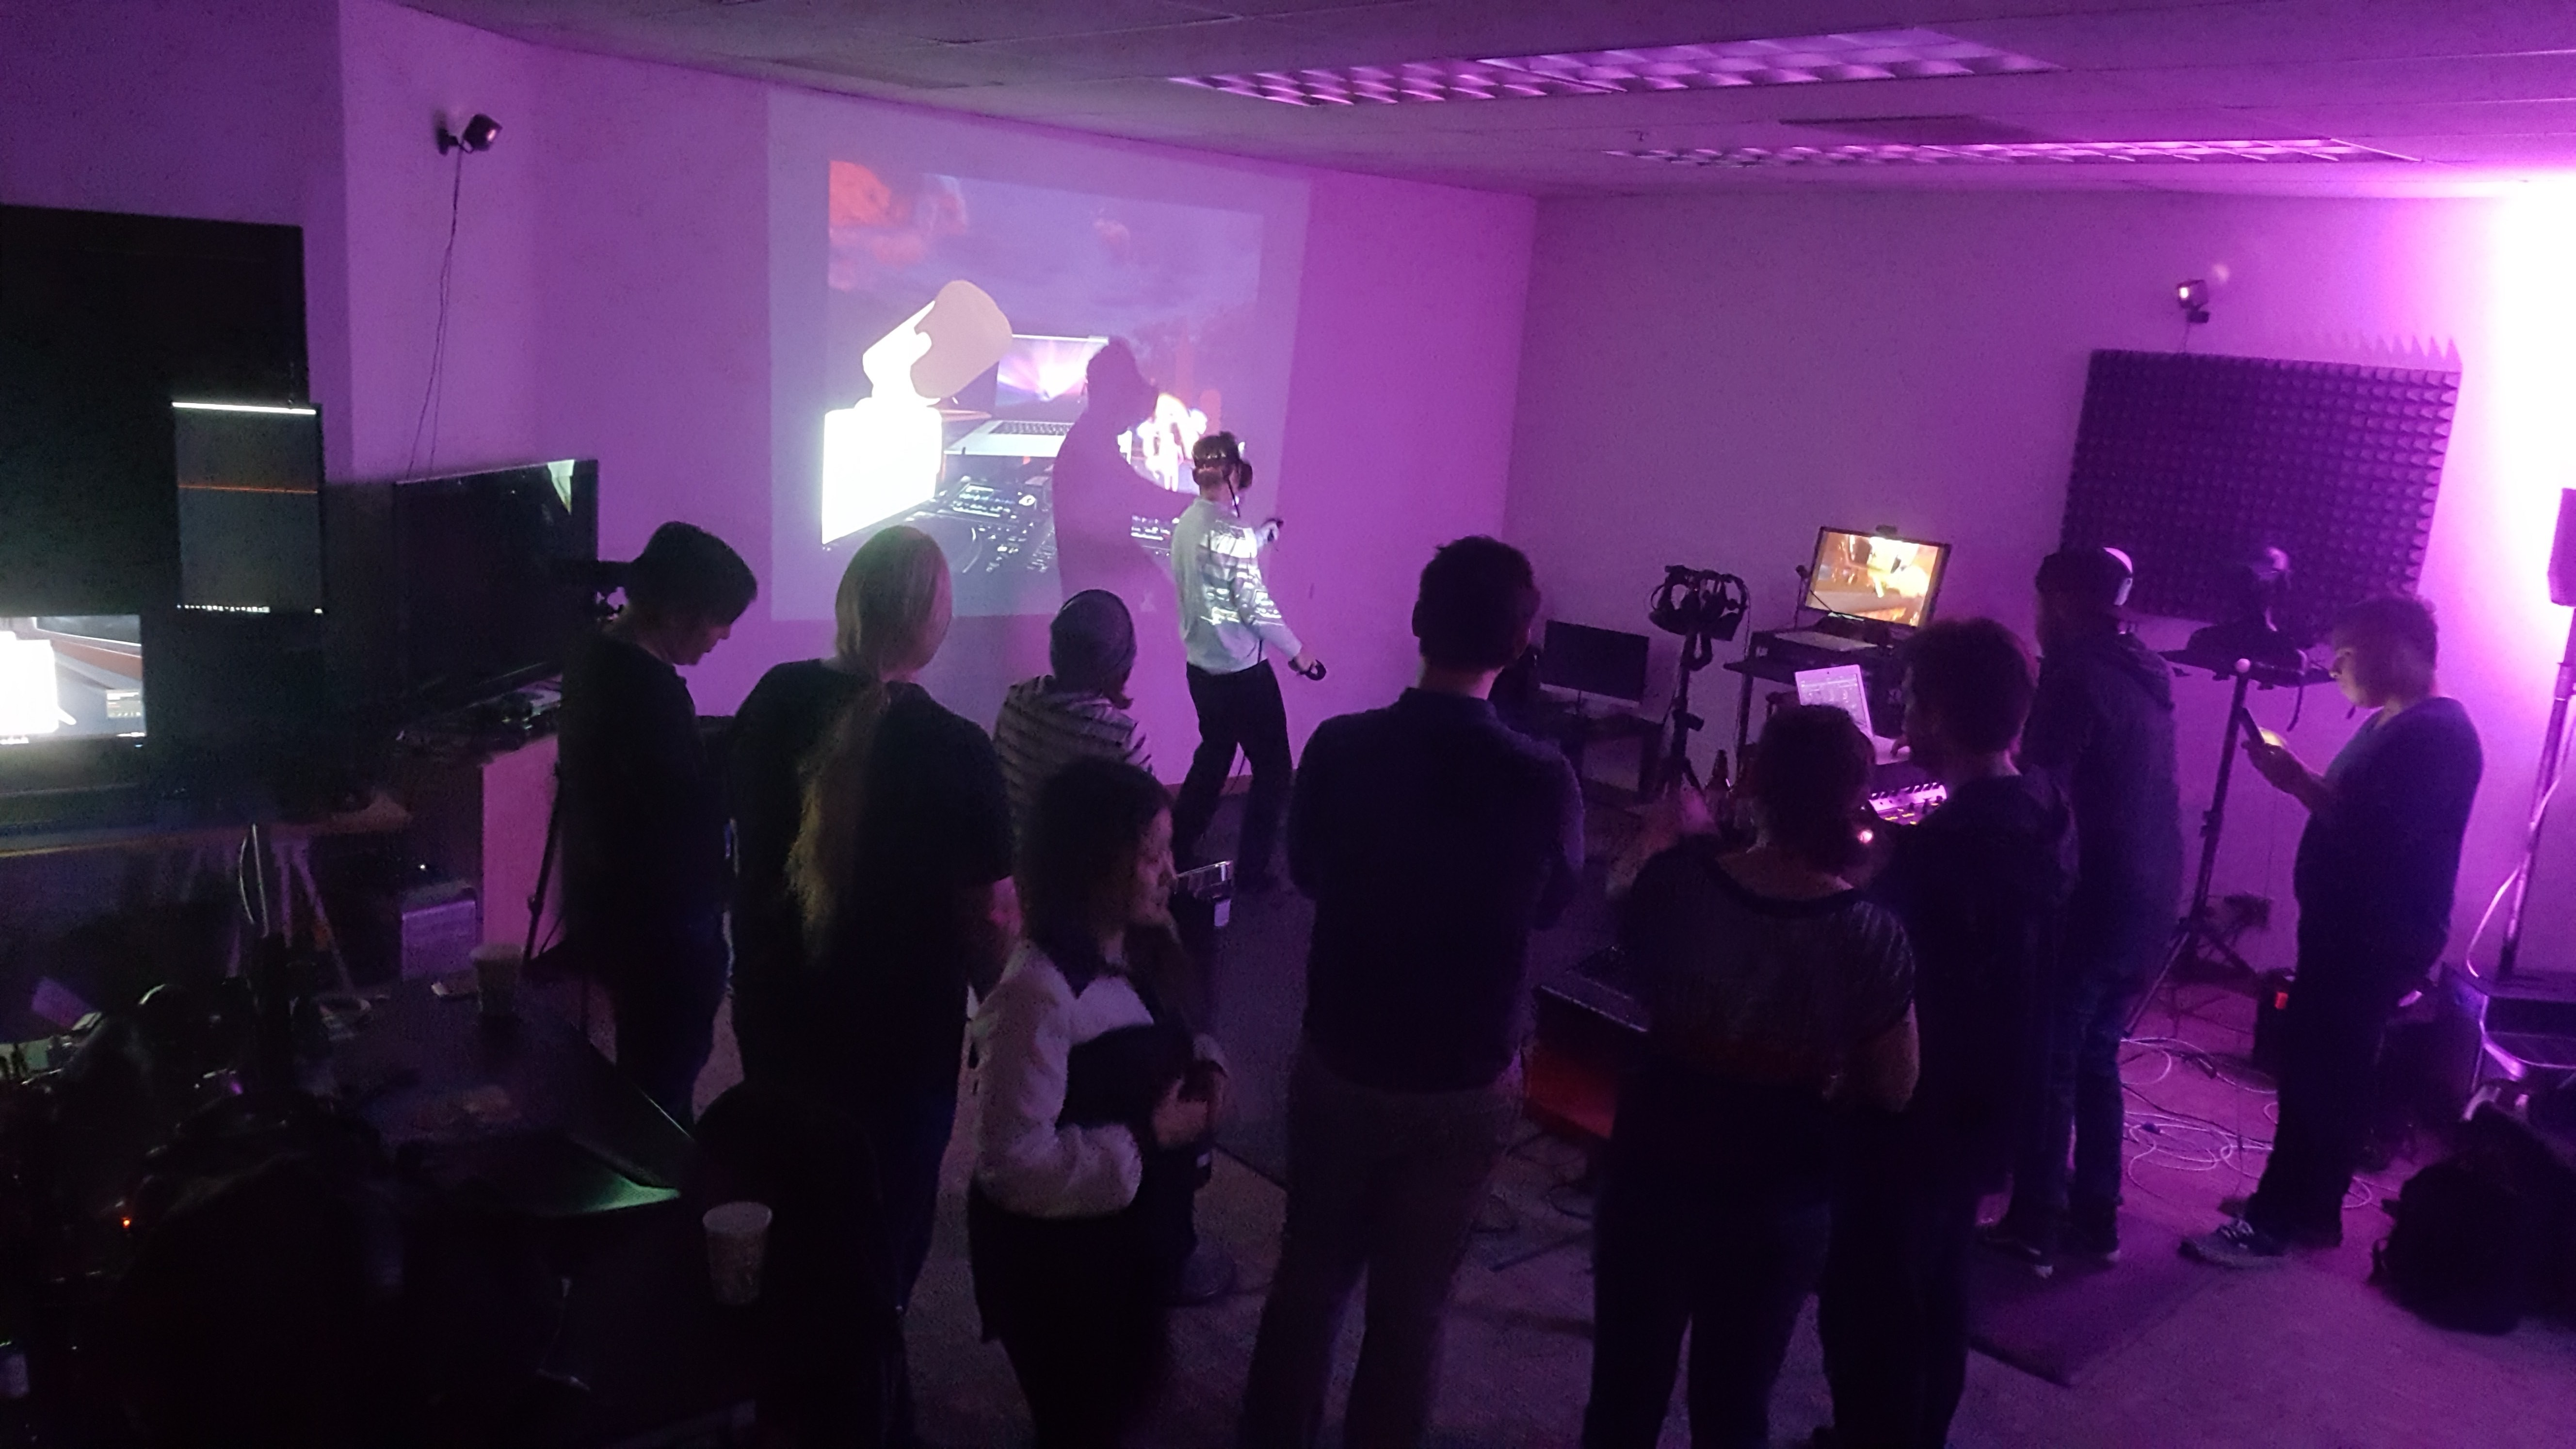 I Went to a Dance Party in My Pajamas Thanks to VR